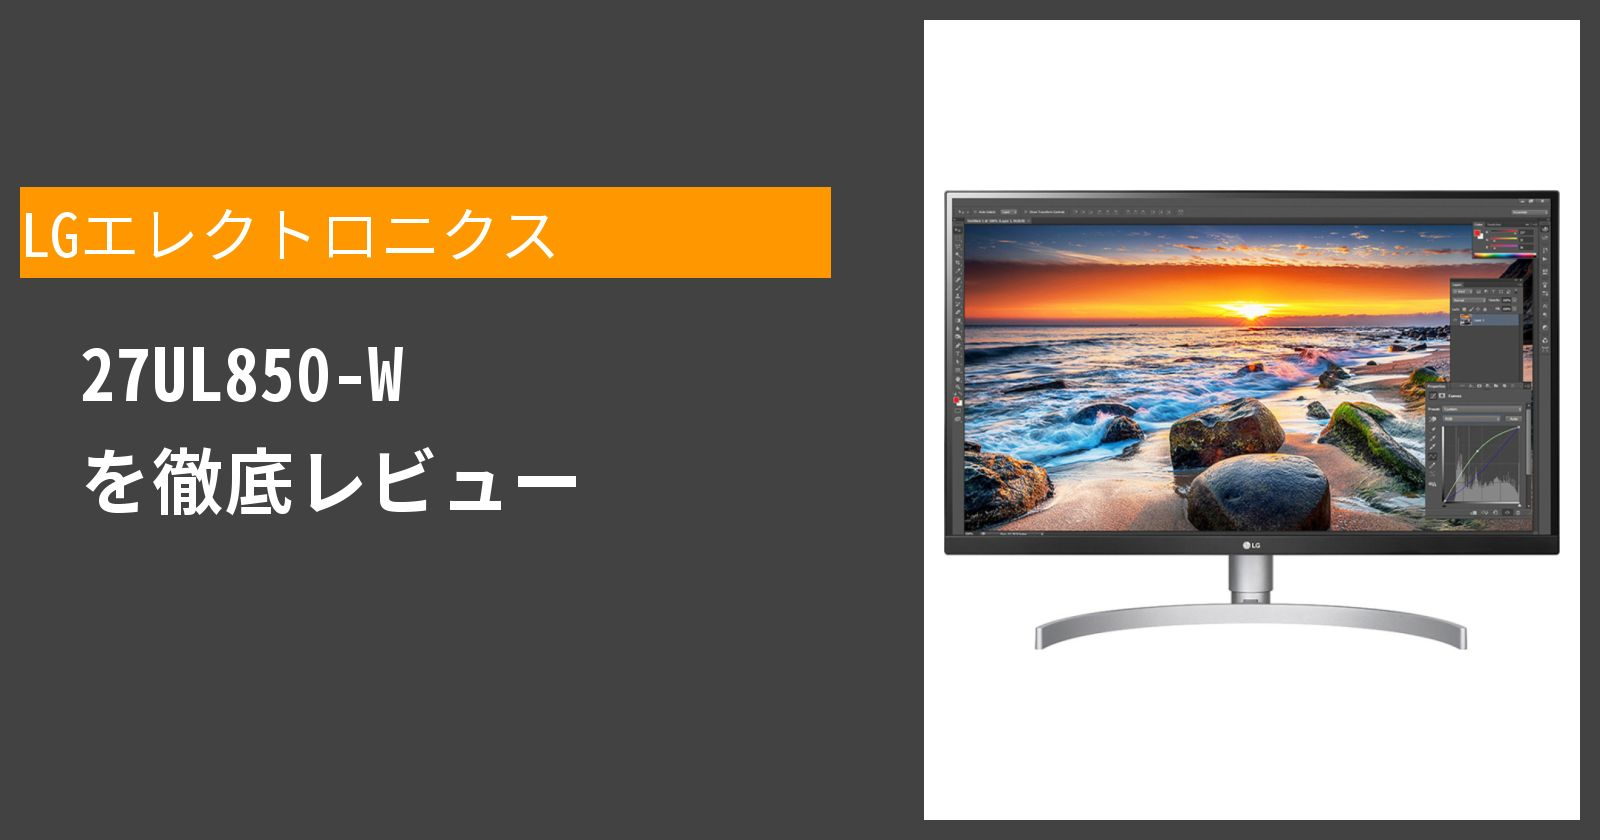 27UL850-Wを徹底評価